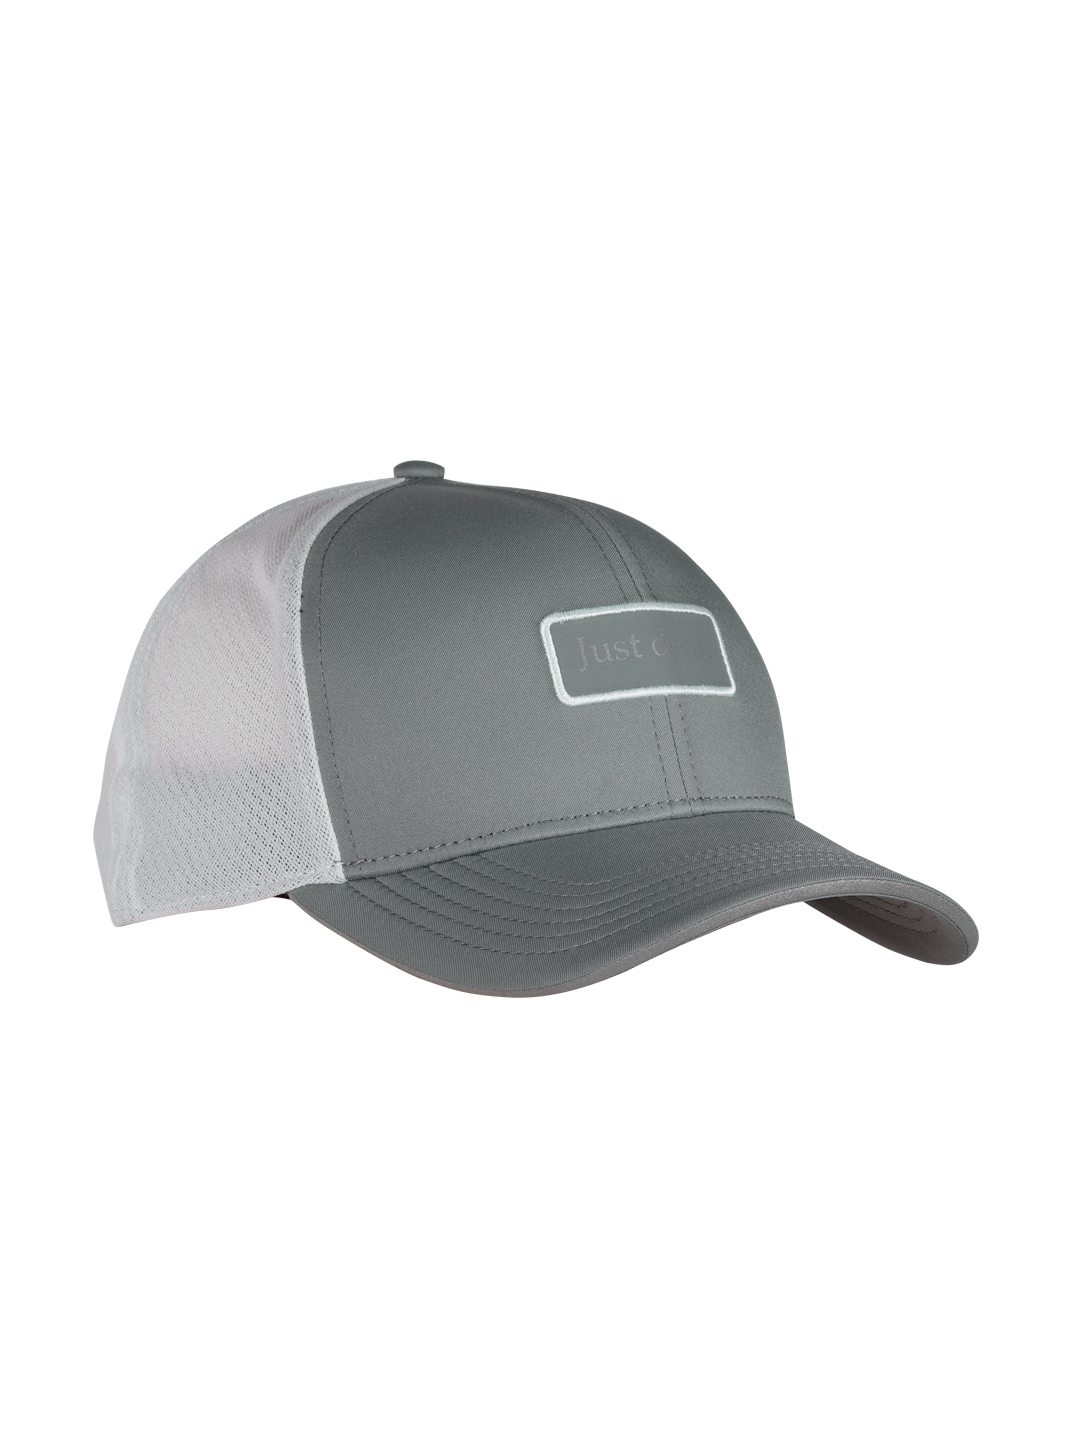 b3863ae45eccb Buy Nike Unisex Grey   White Colourblocked Baseball Cap - Caps for ...